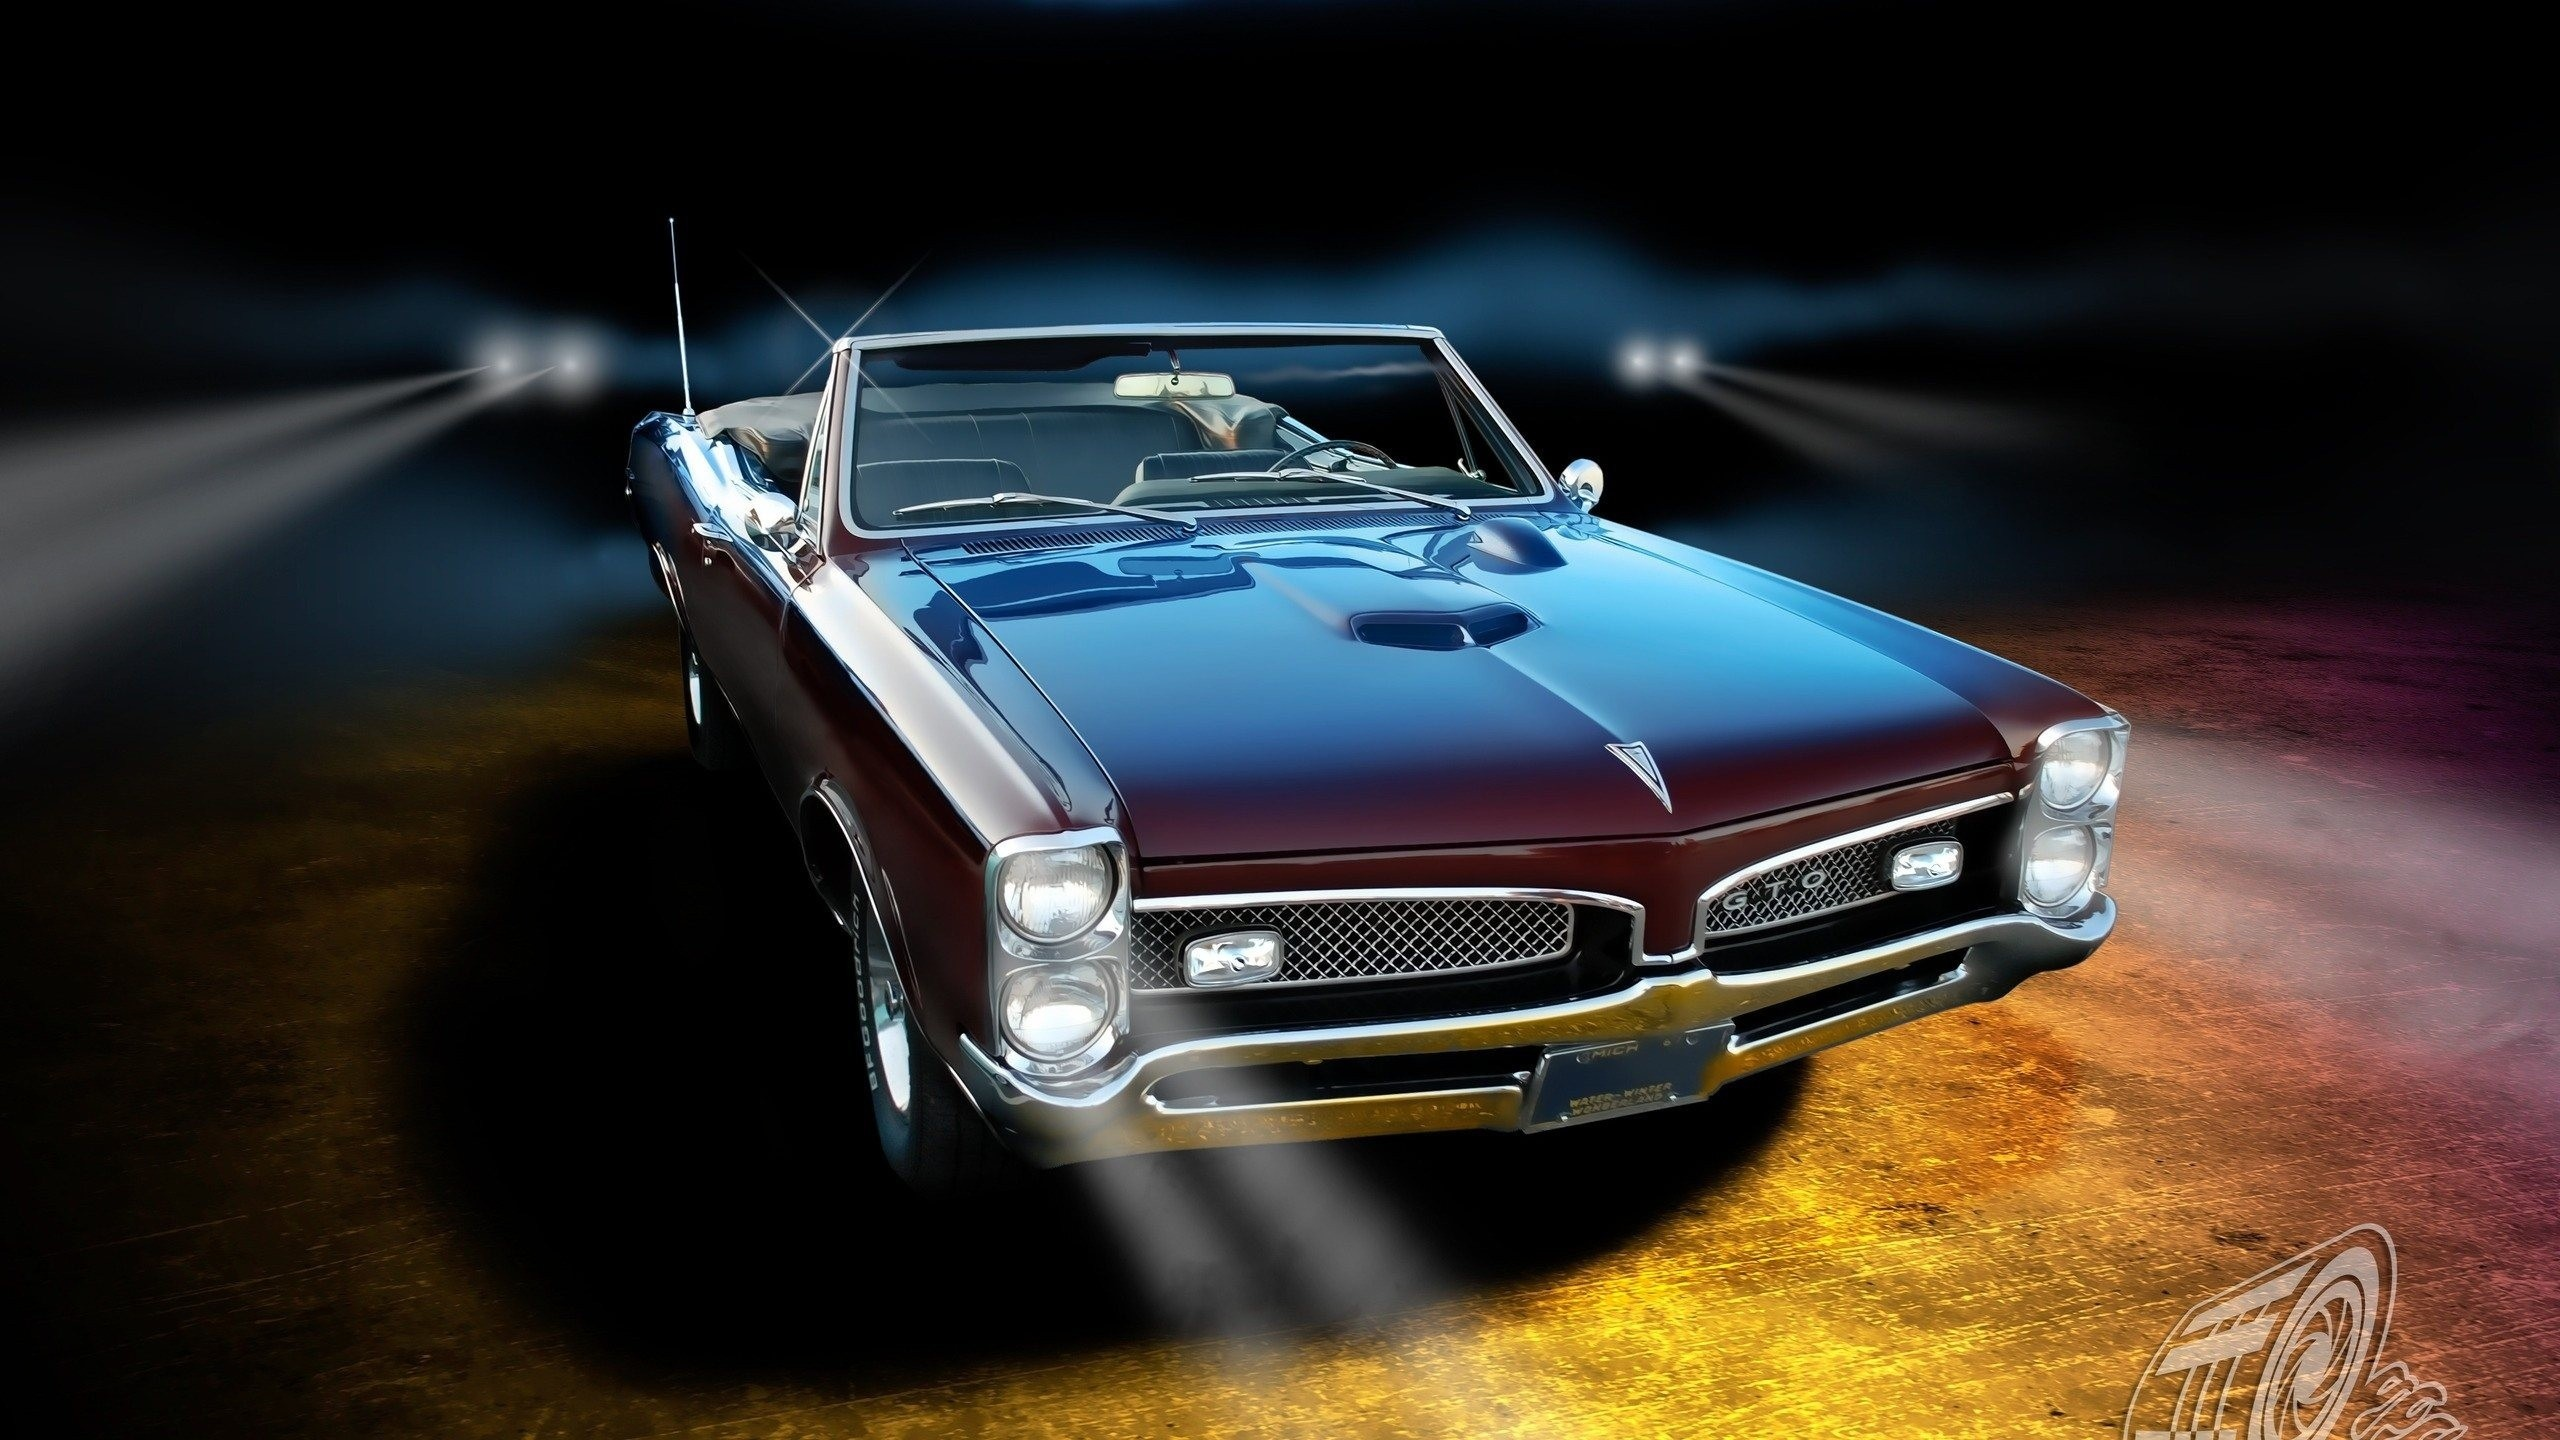 … clic muscle cars wallpaper 17 with clic muscle cars …